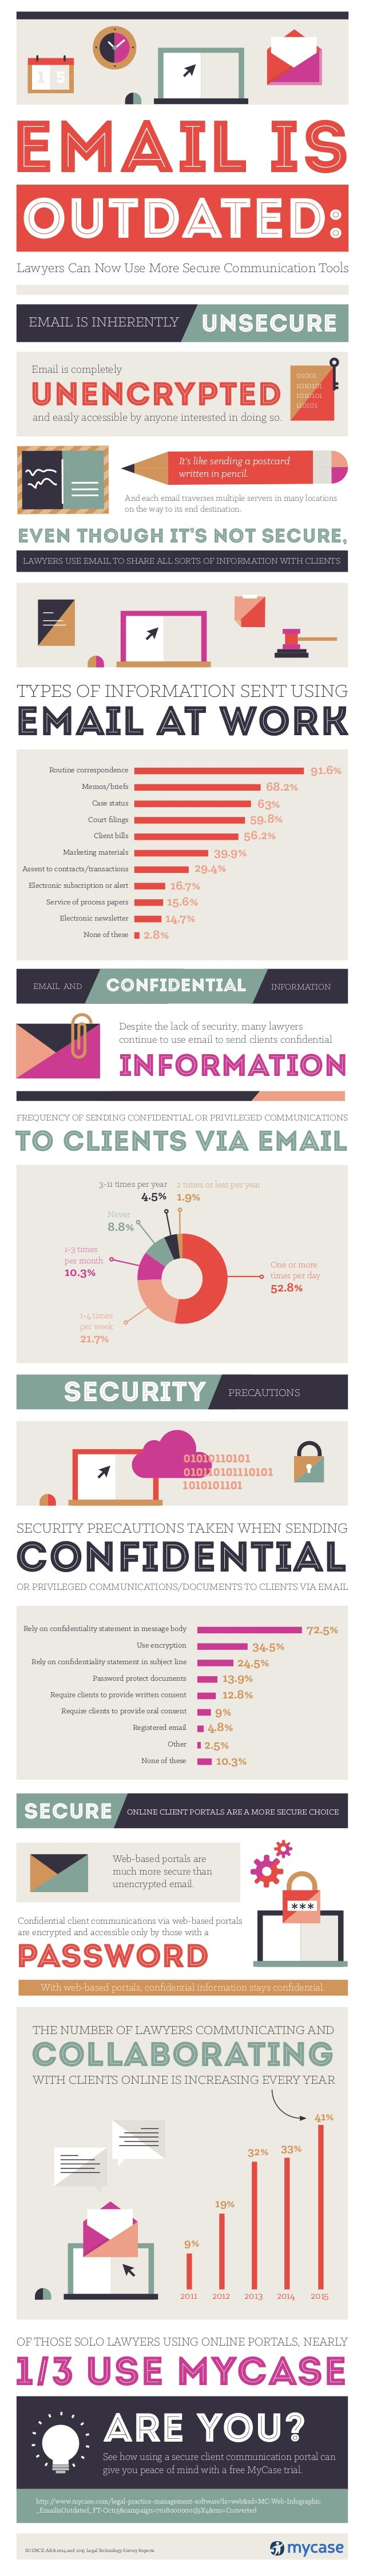 EMAIL AND INFORMATIONCONFIDENTIAL PRECAUTIONSSECURITY ONLINE CLIENT PORTALS ARE A MORE SECURE CHOICEsecure EMAIL AT WORK T...